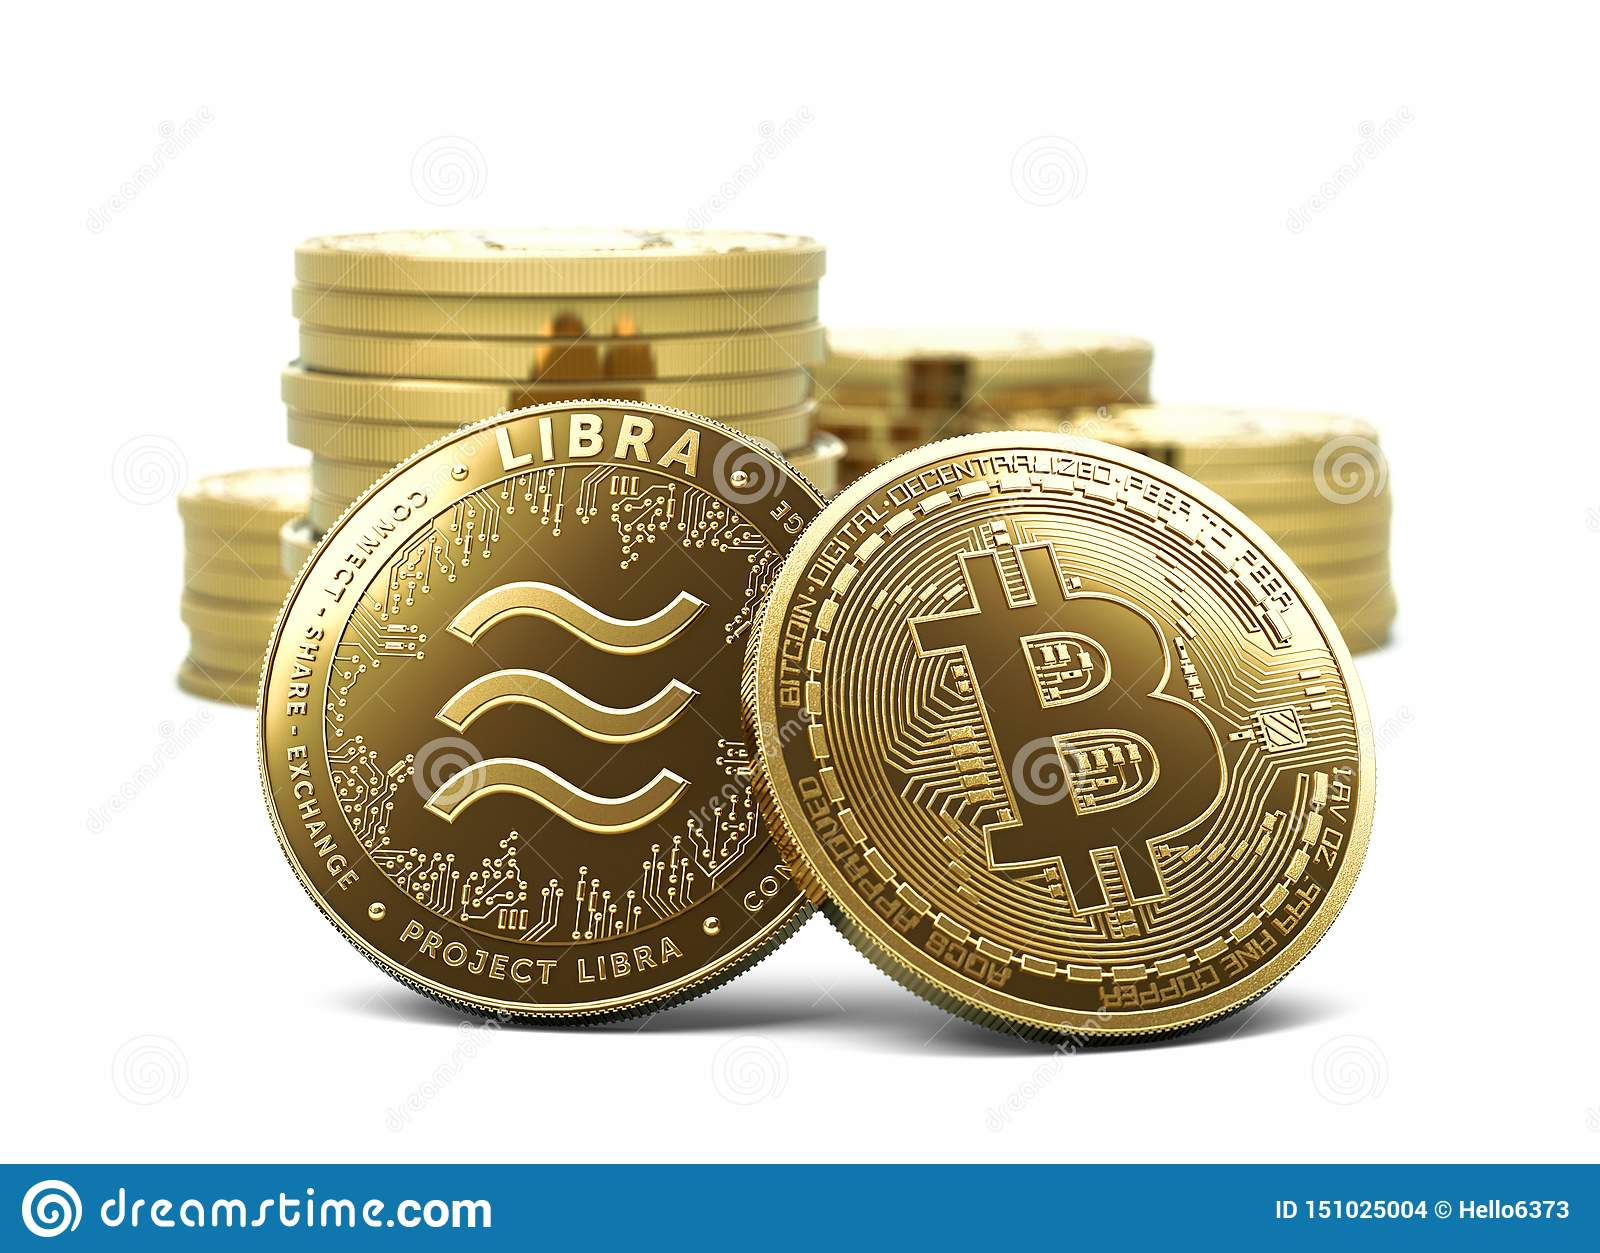 libra coin cryptocurrency